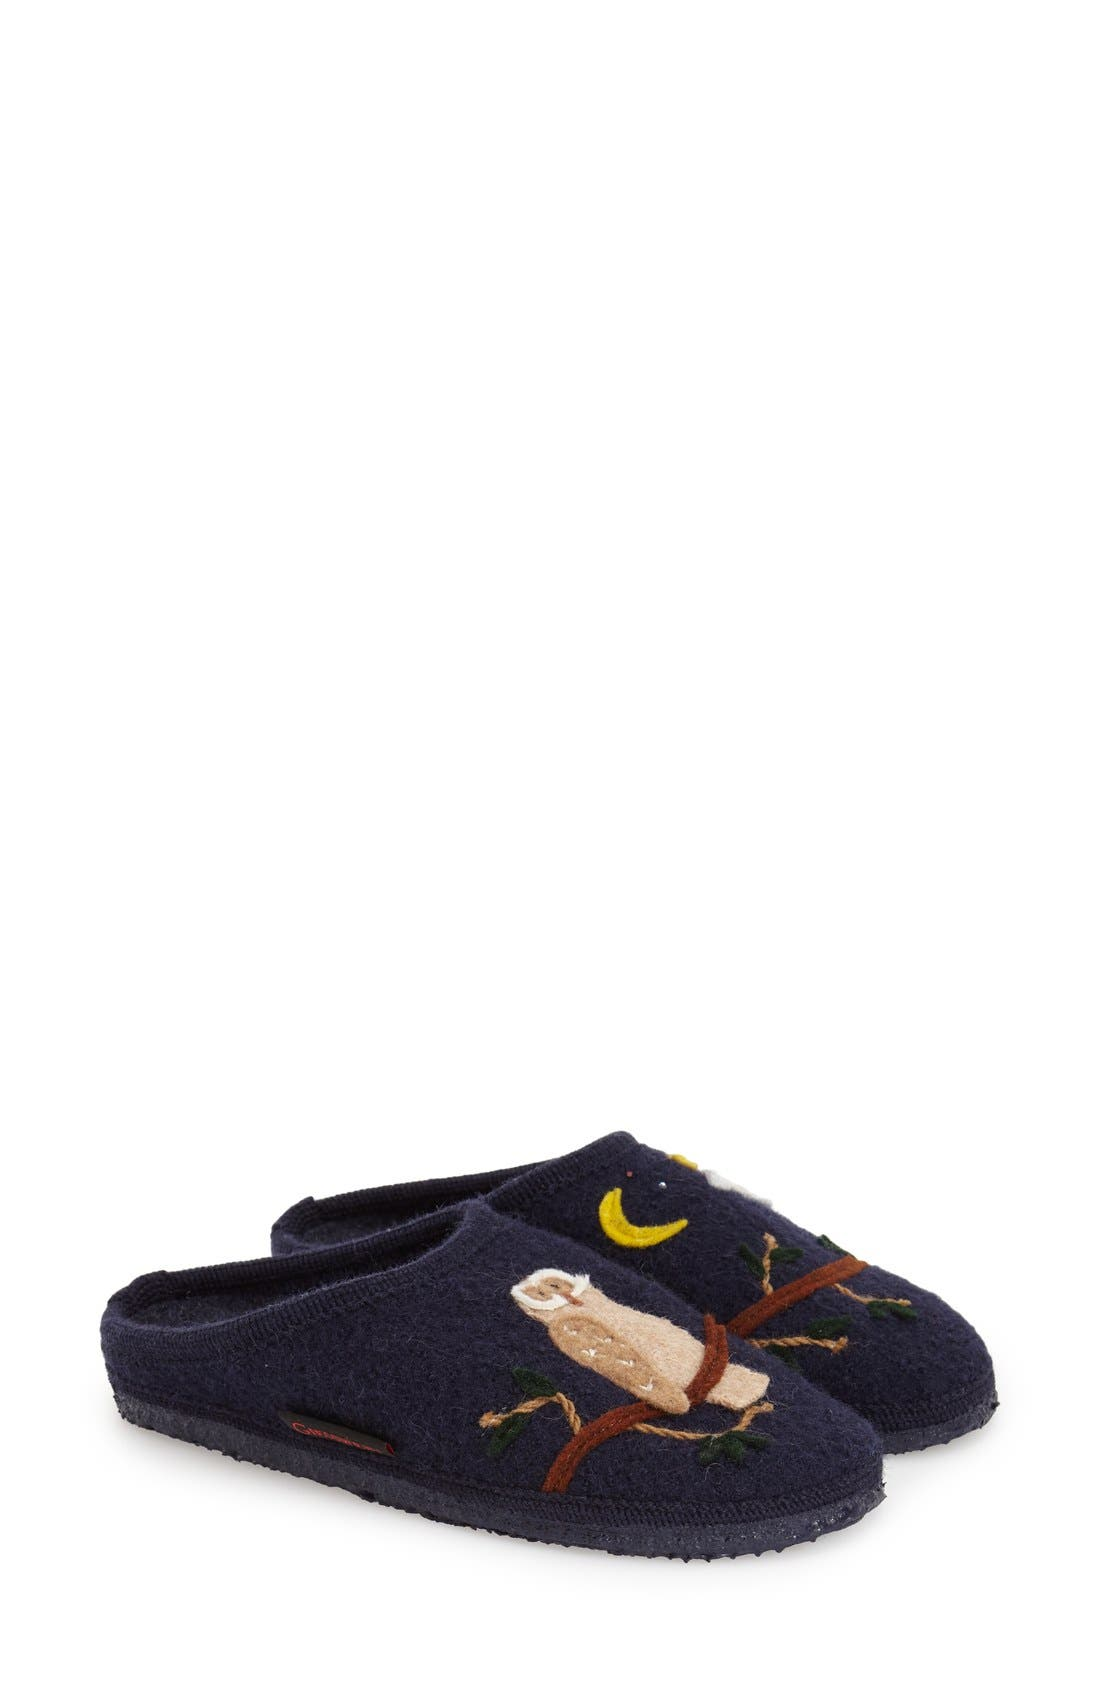 'Mado' Wool Slipper,                             Main thumbnail 1, color,                             Navy Wool